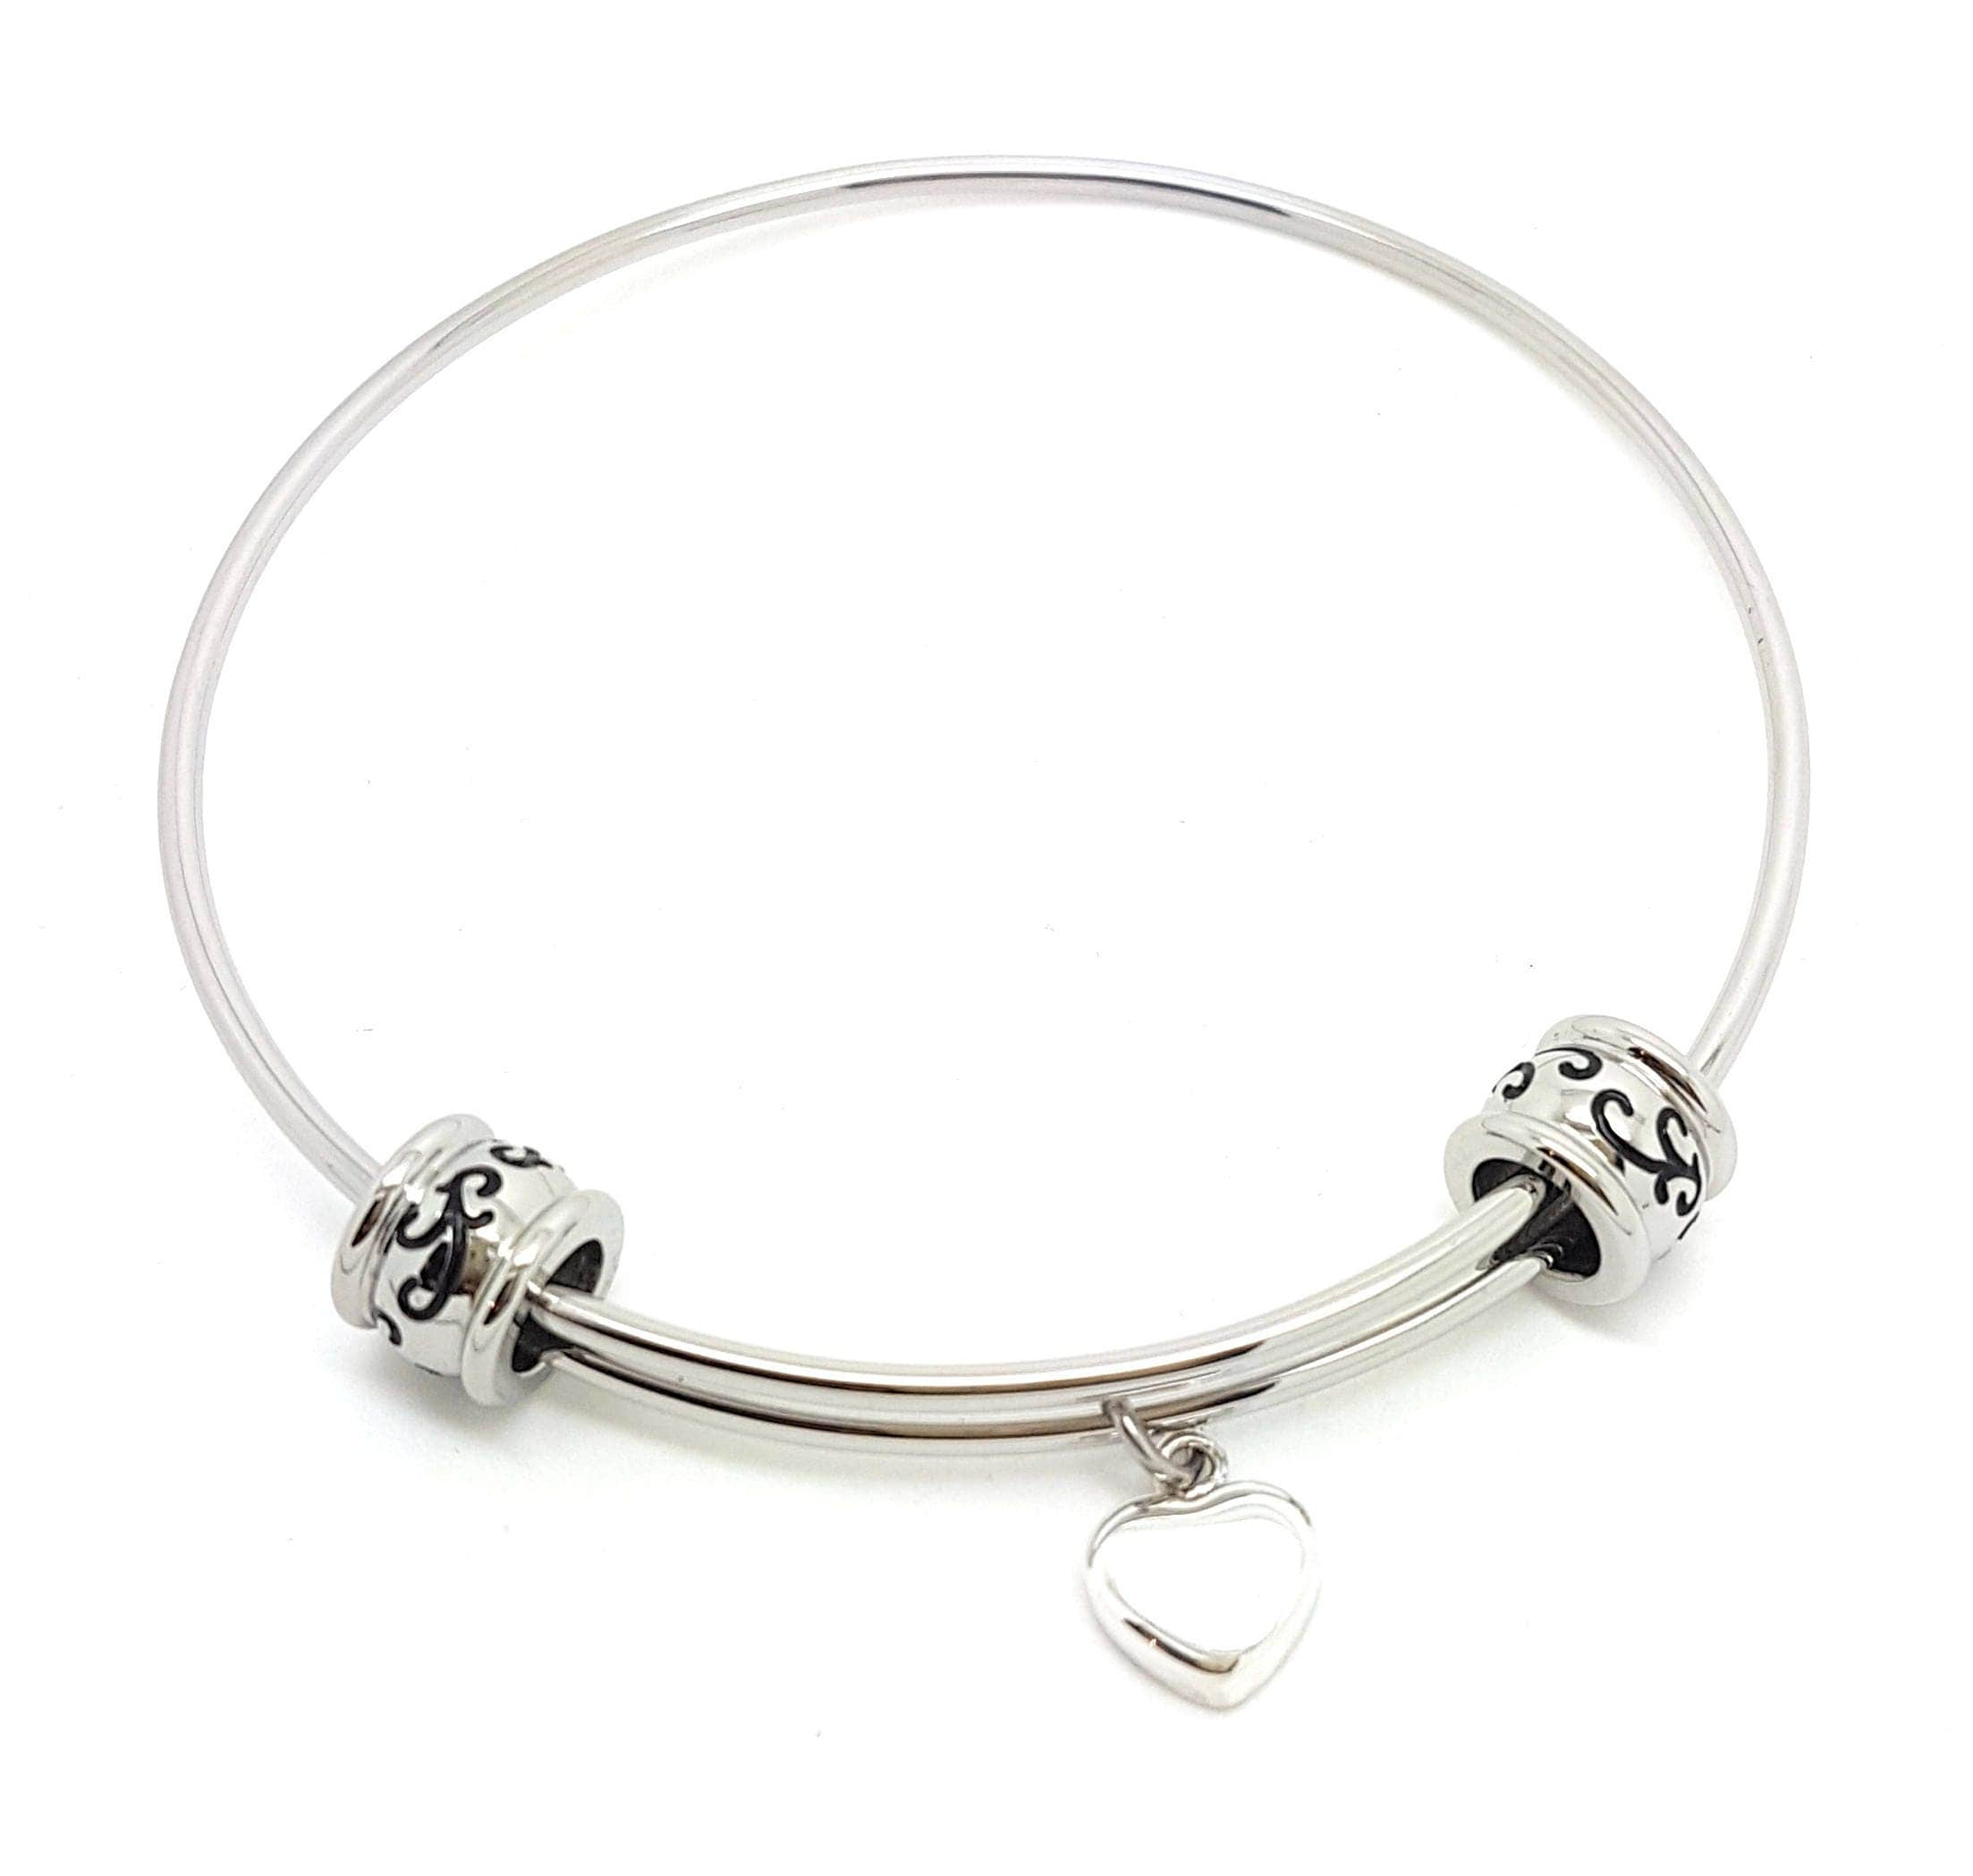 bangle p charms cool women bracelet sterling her girls charm silver for bracelets bangles